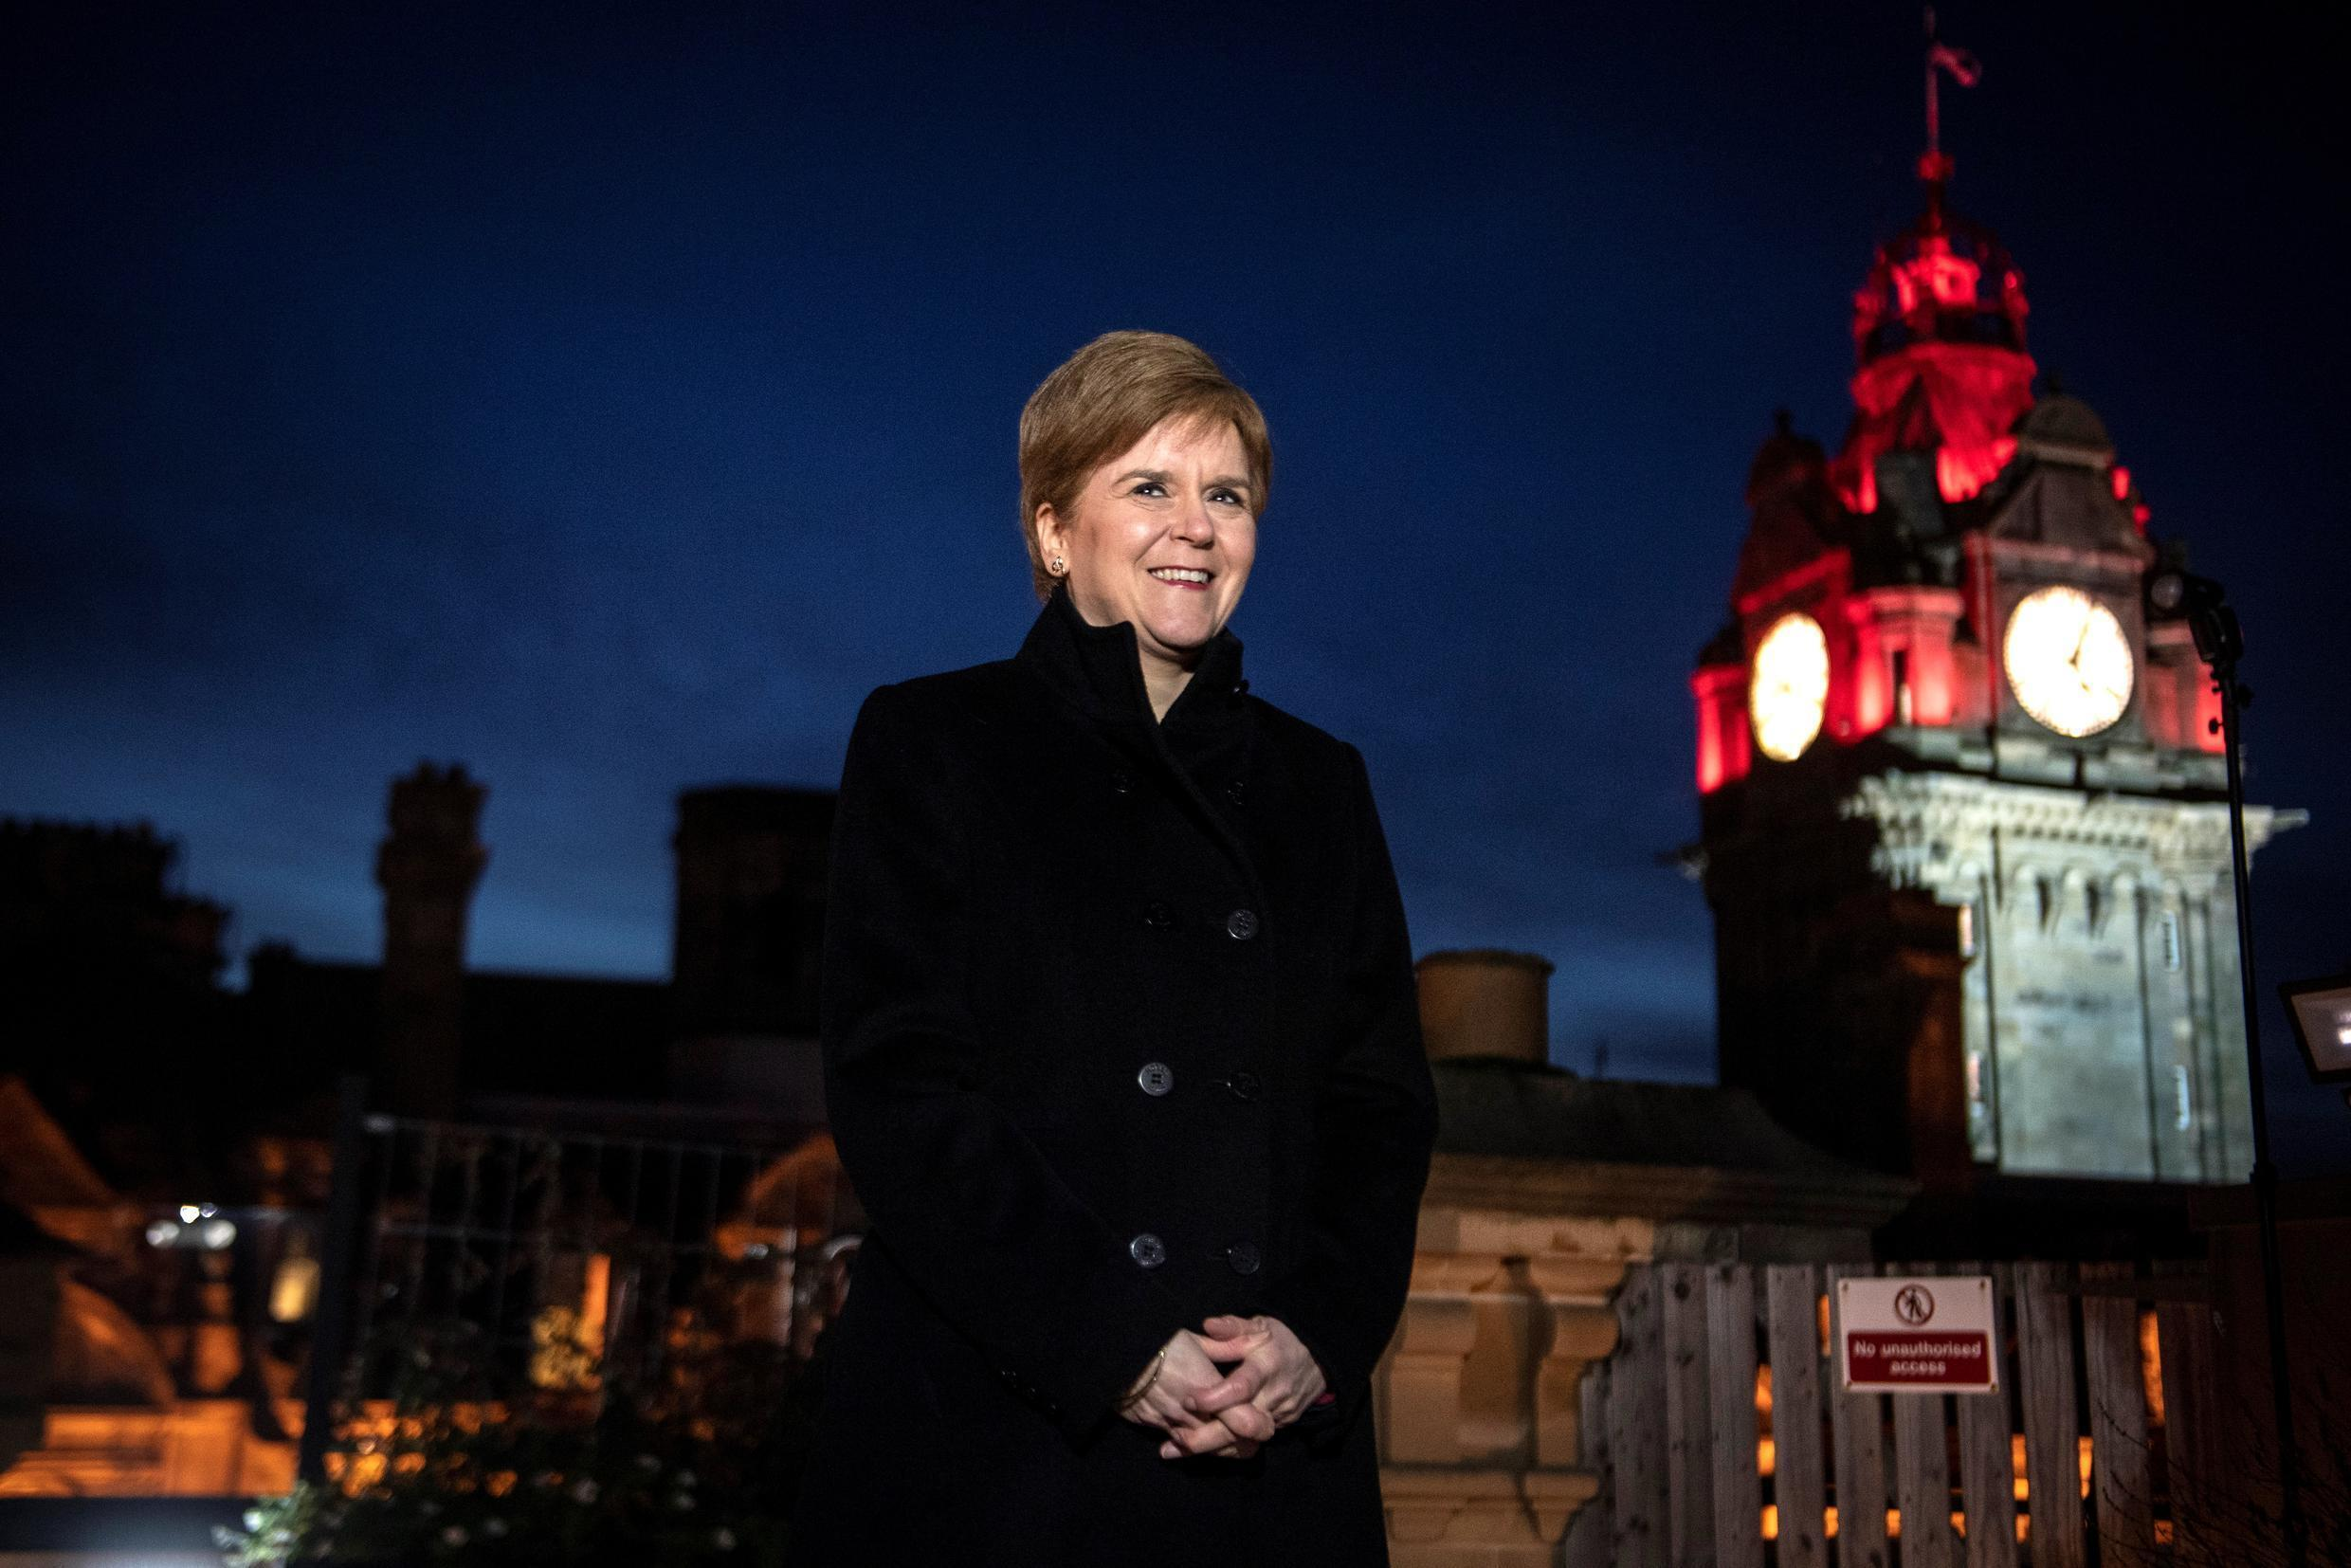 Scotland's First Minister Nicola Sturgeon intends to use the May vote for the parliament in Edinburgh to make the case for a breakaway from the UK